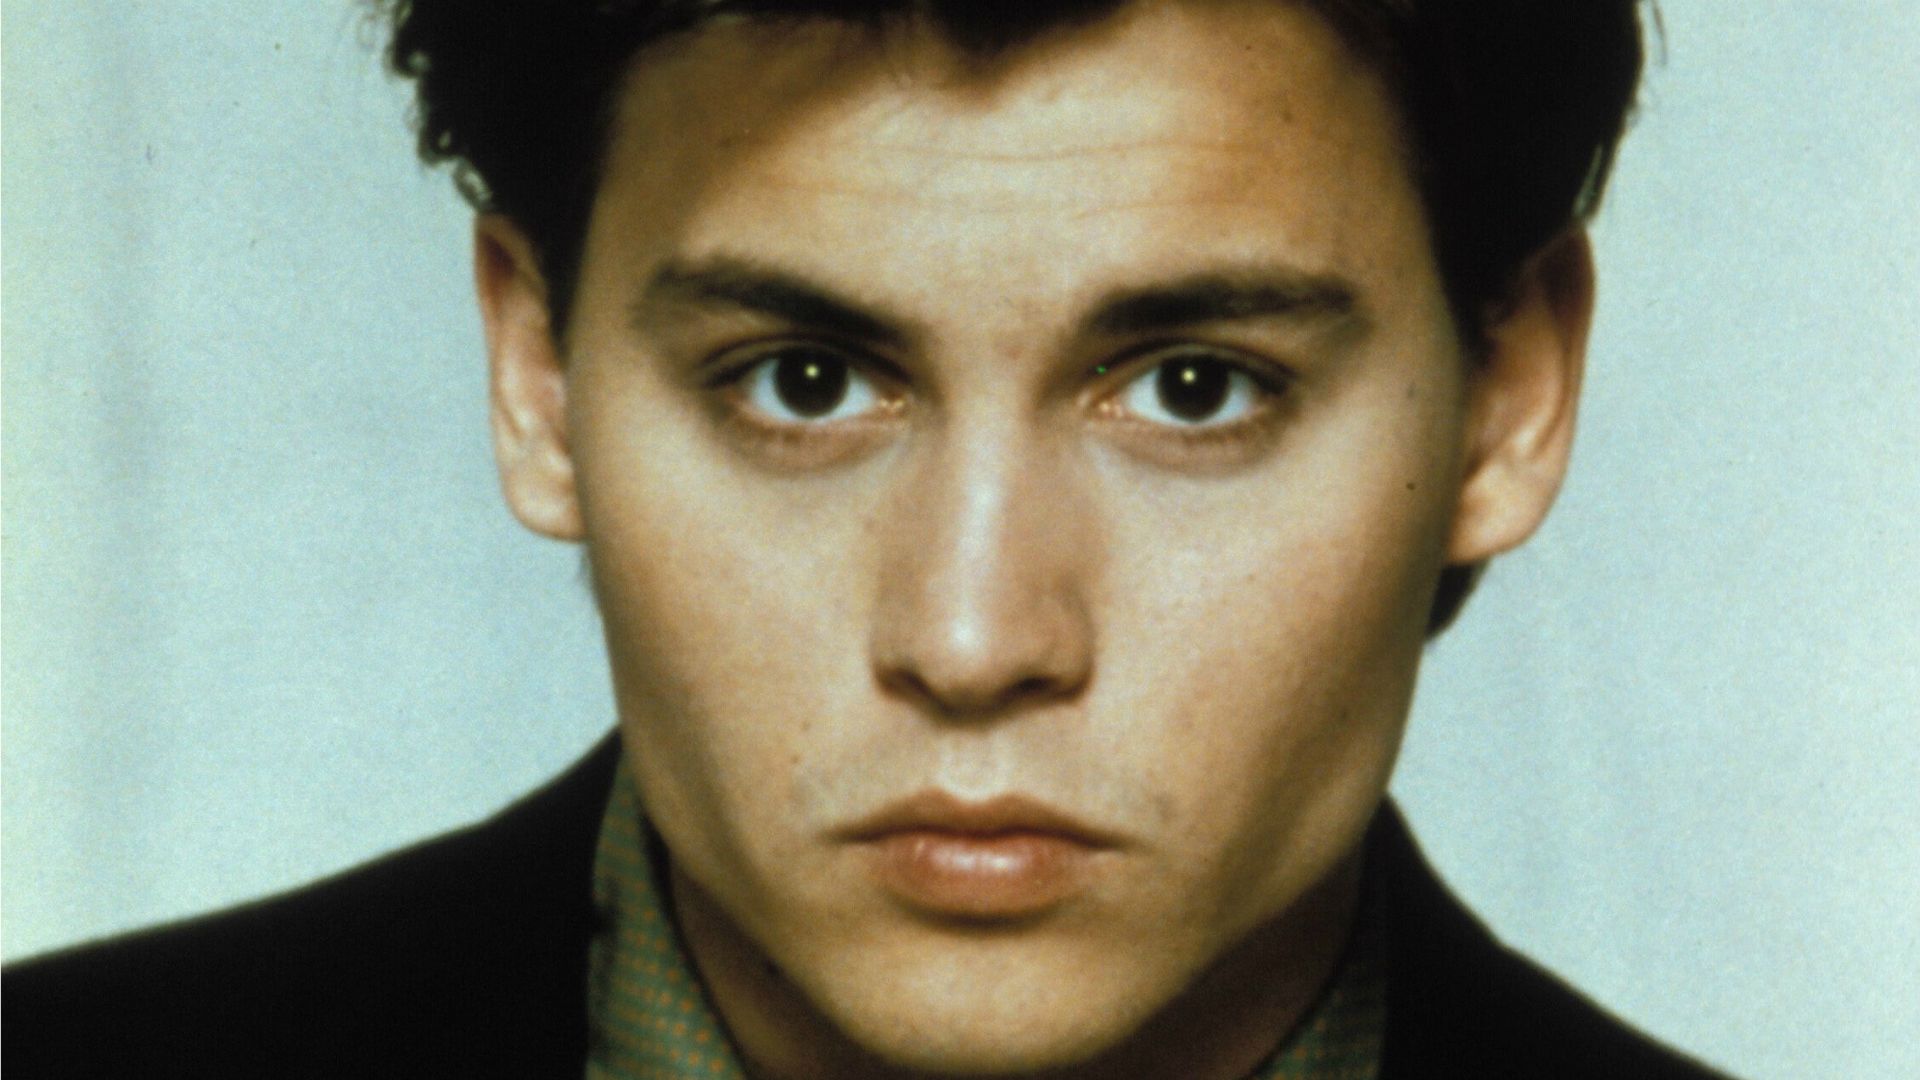 Johnny Depp at 58: a Hollywood icon in free fall